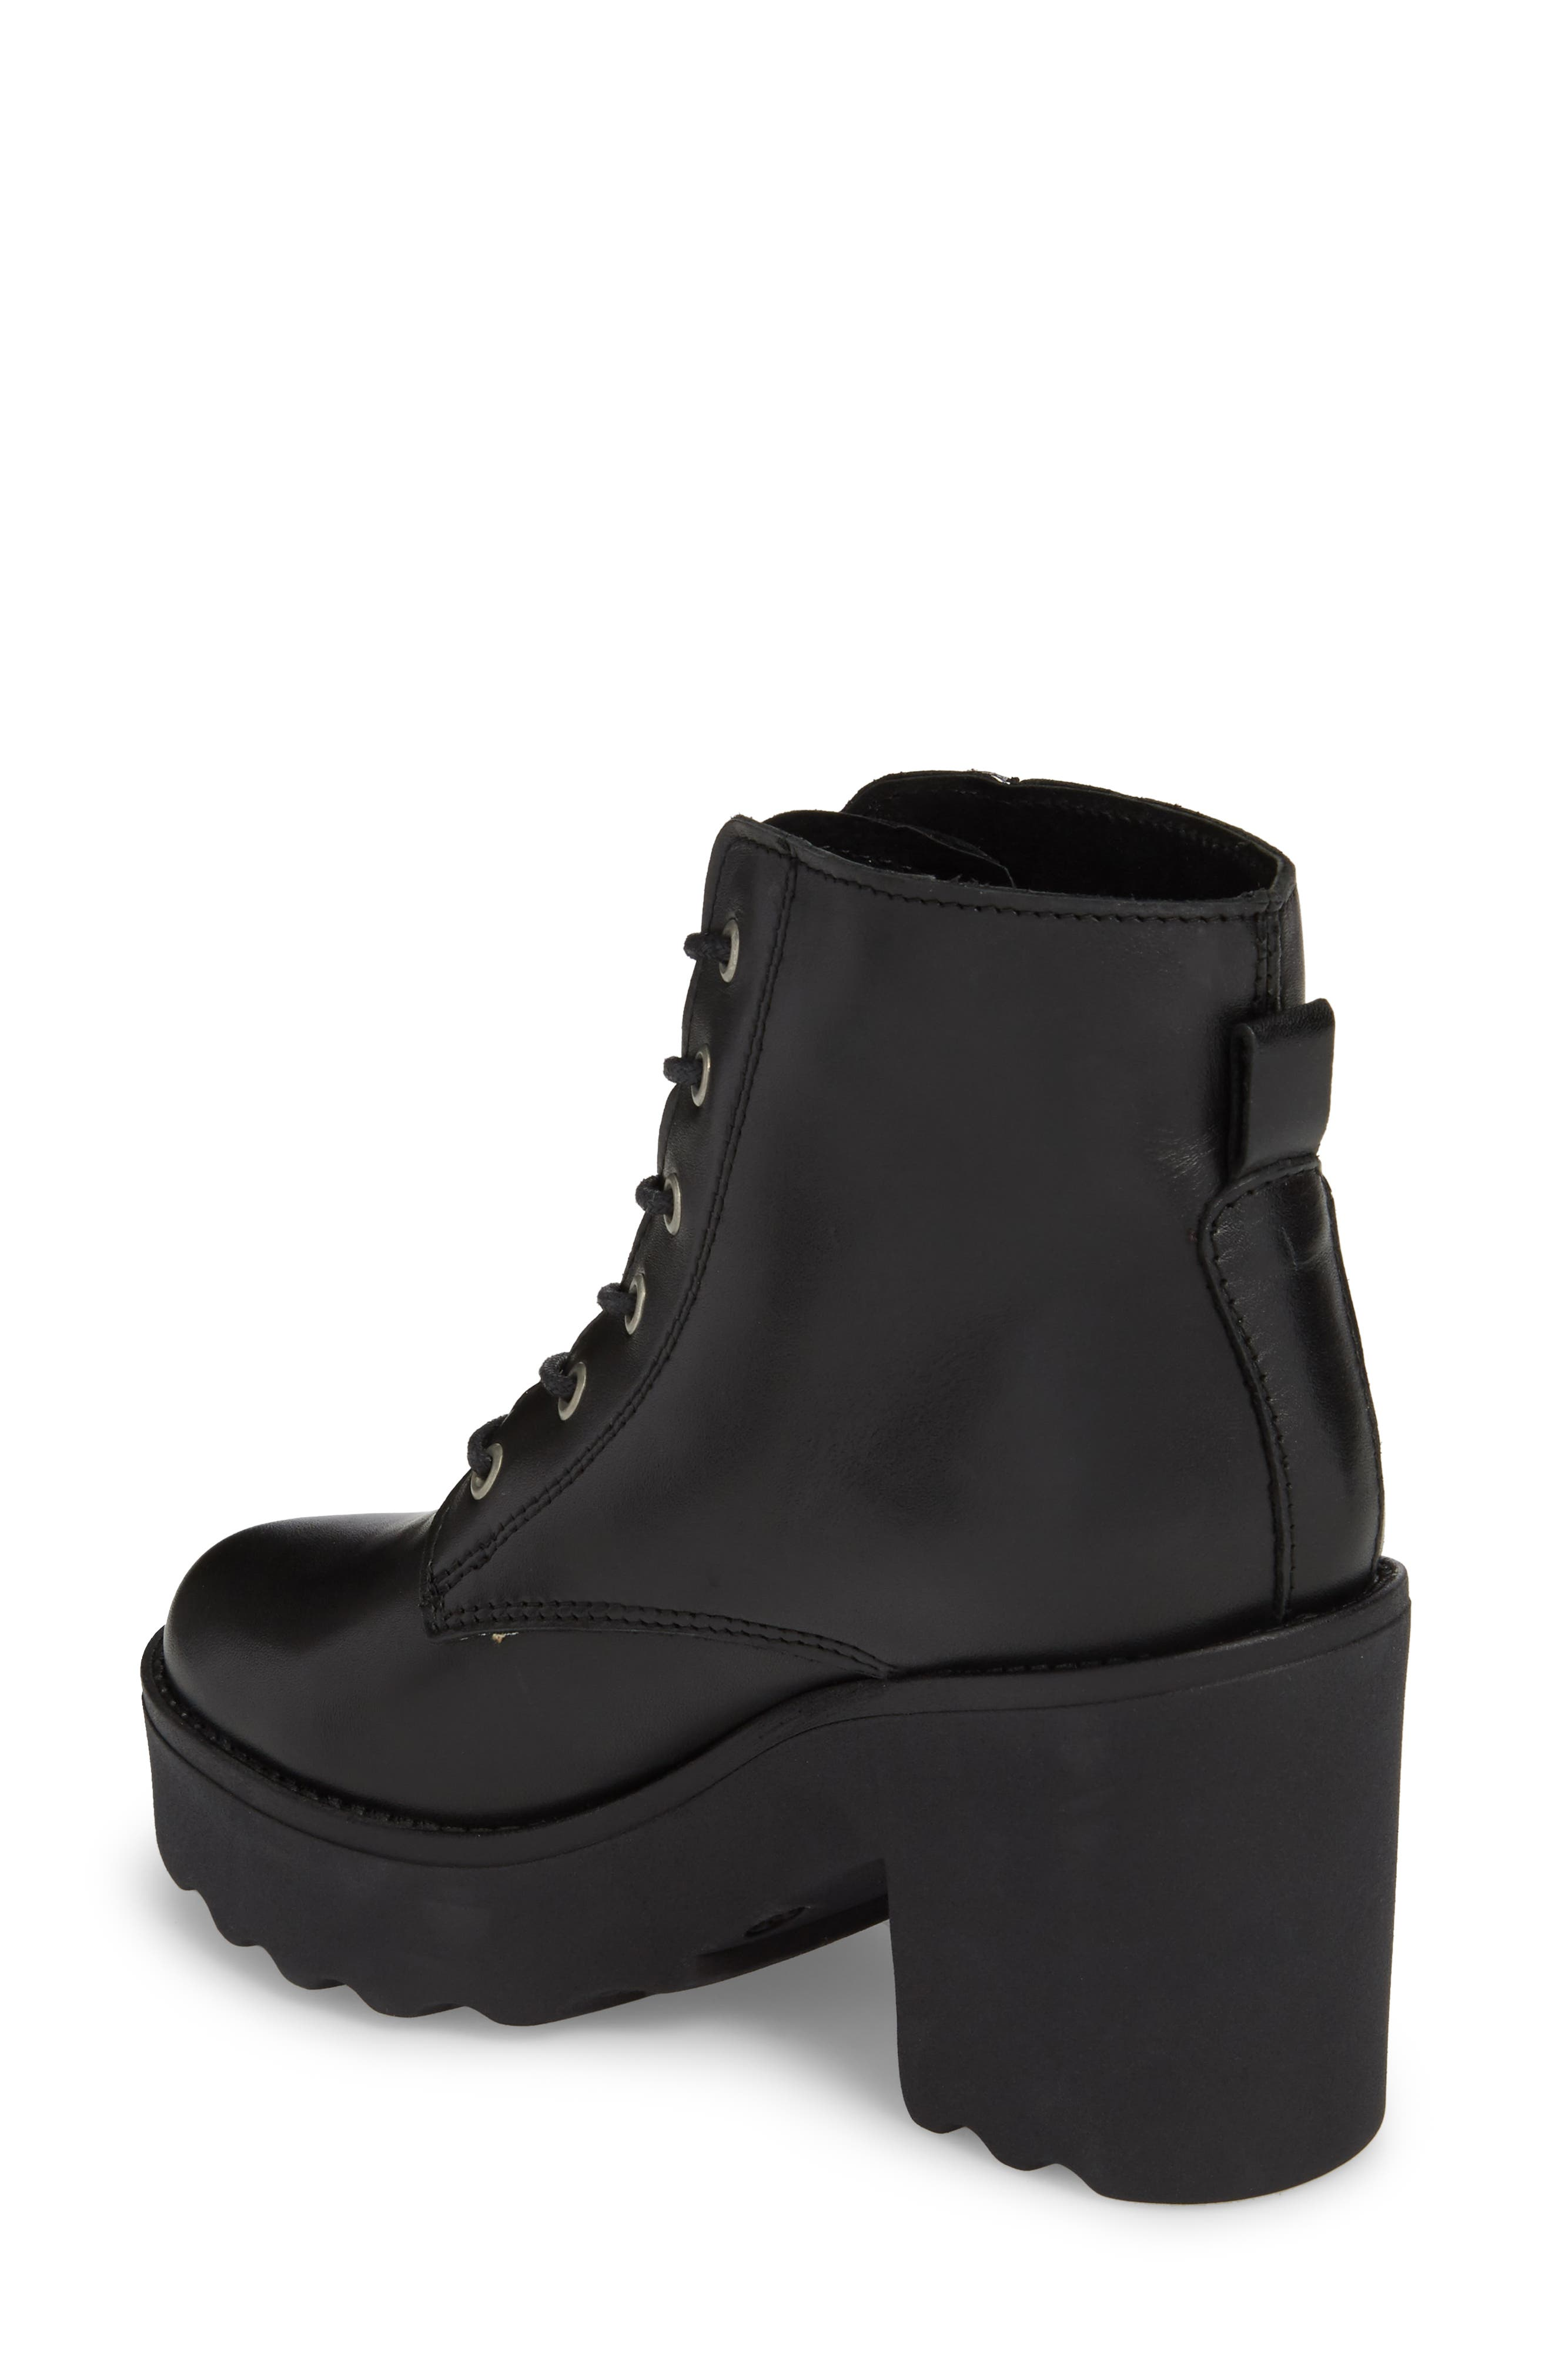 Gusto Boot,                             Alternate thumbnail 2, color,                             Black Leather